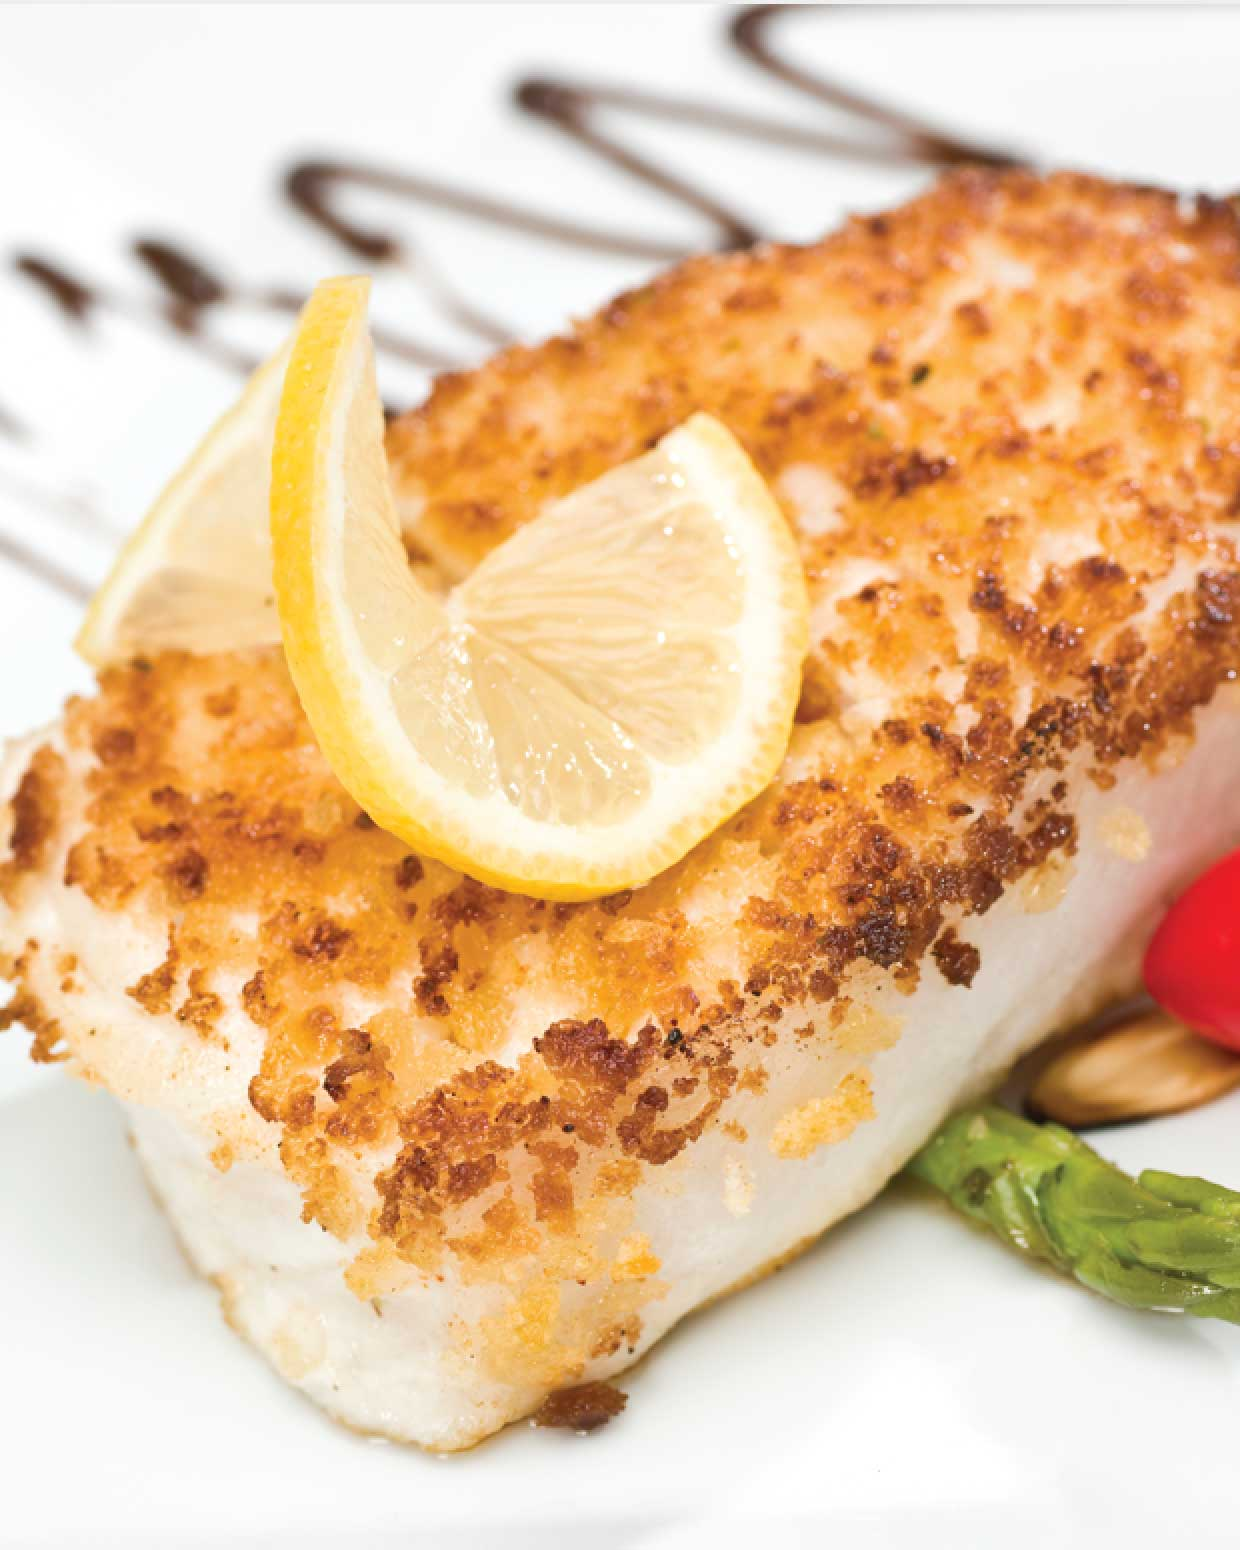 Sea Bass with Caper and Lemon Sauce